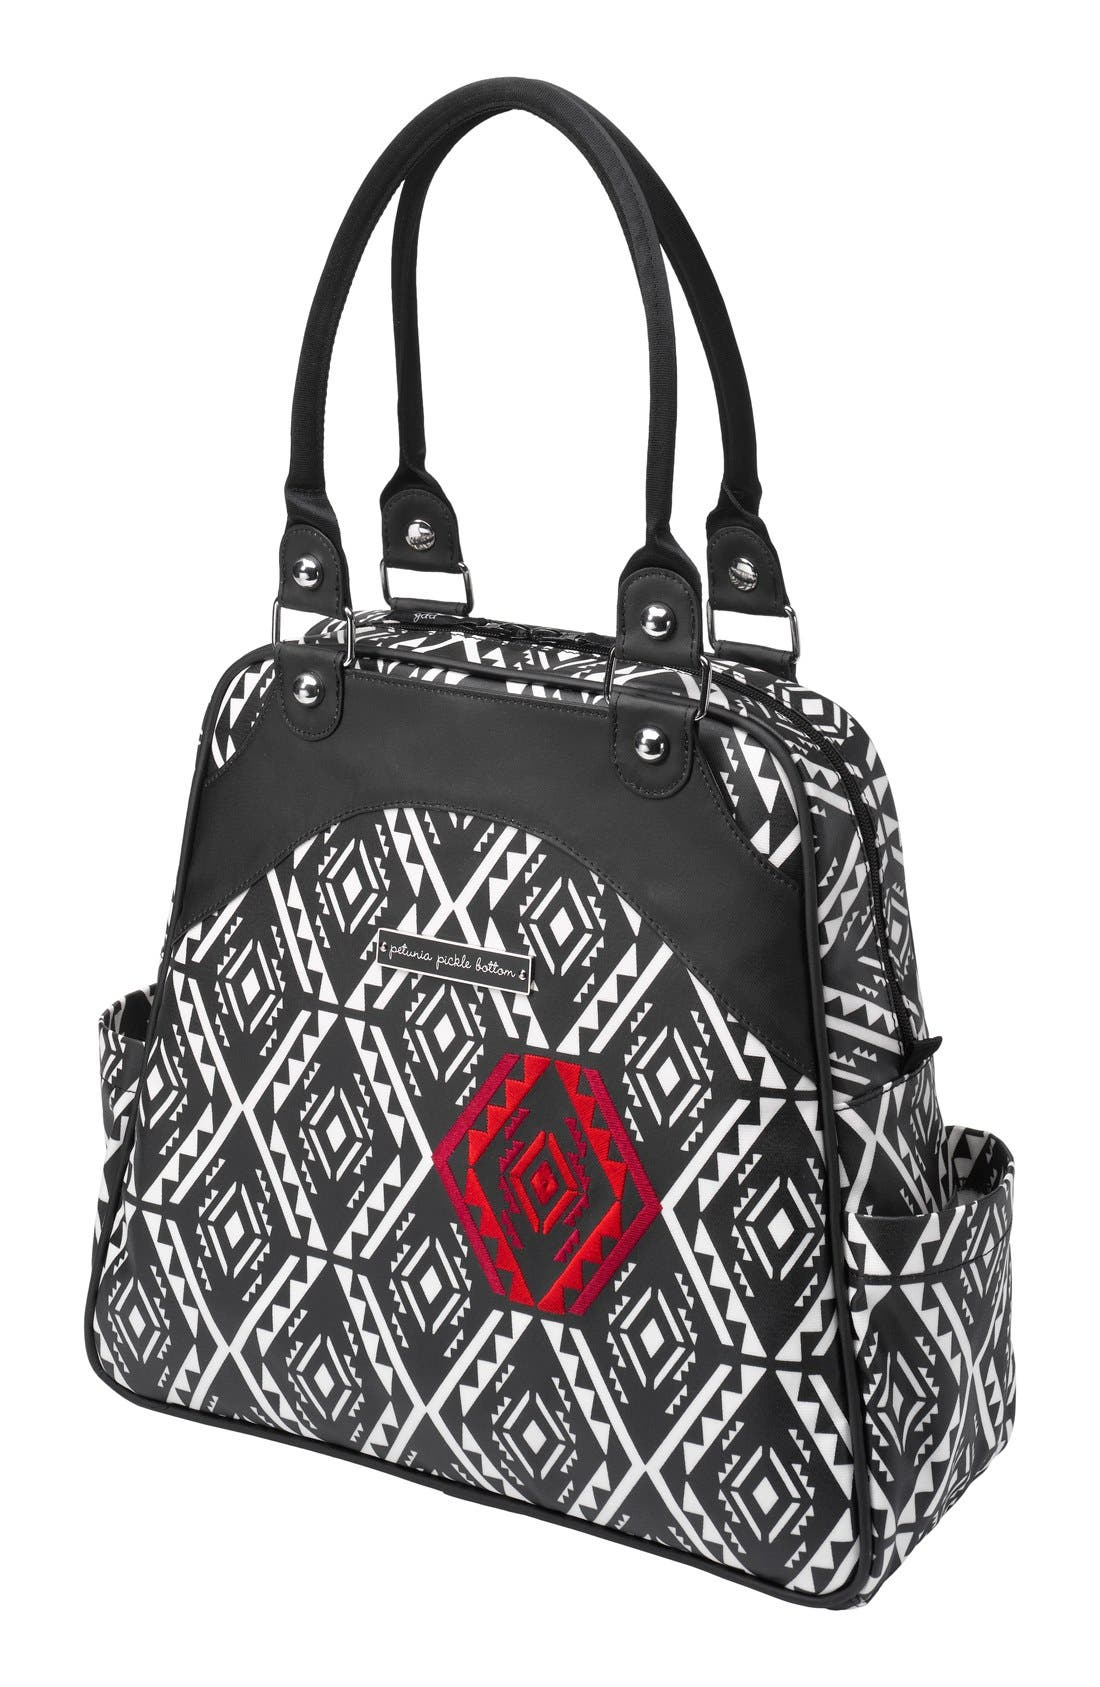 Petunia Pickle Bottom 'Glazed Sashay' Convertible Diaper Bag/Satchel